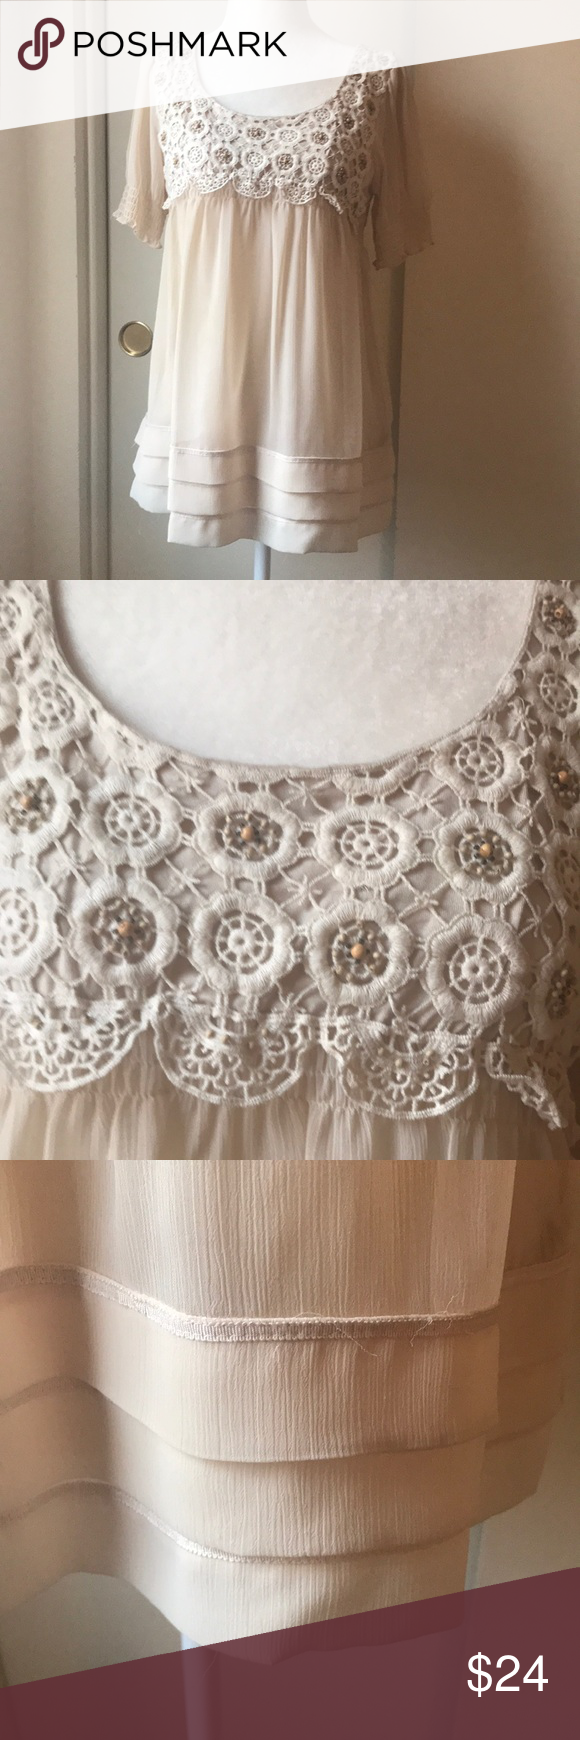 Eci New York Baby Doll Top Gorgeous Beaded And Crocheted